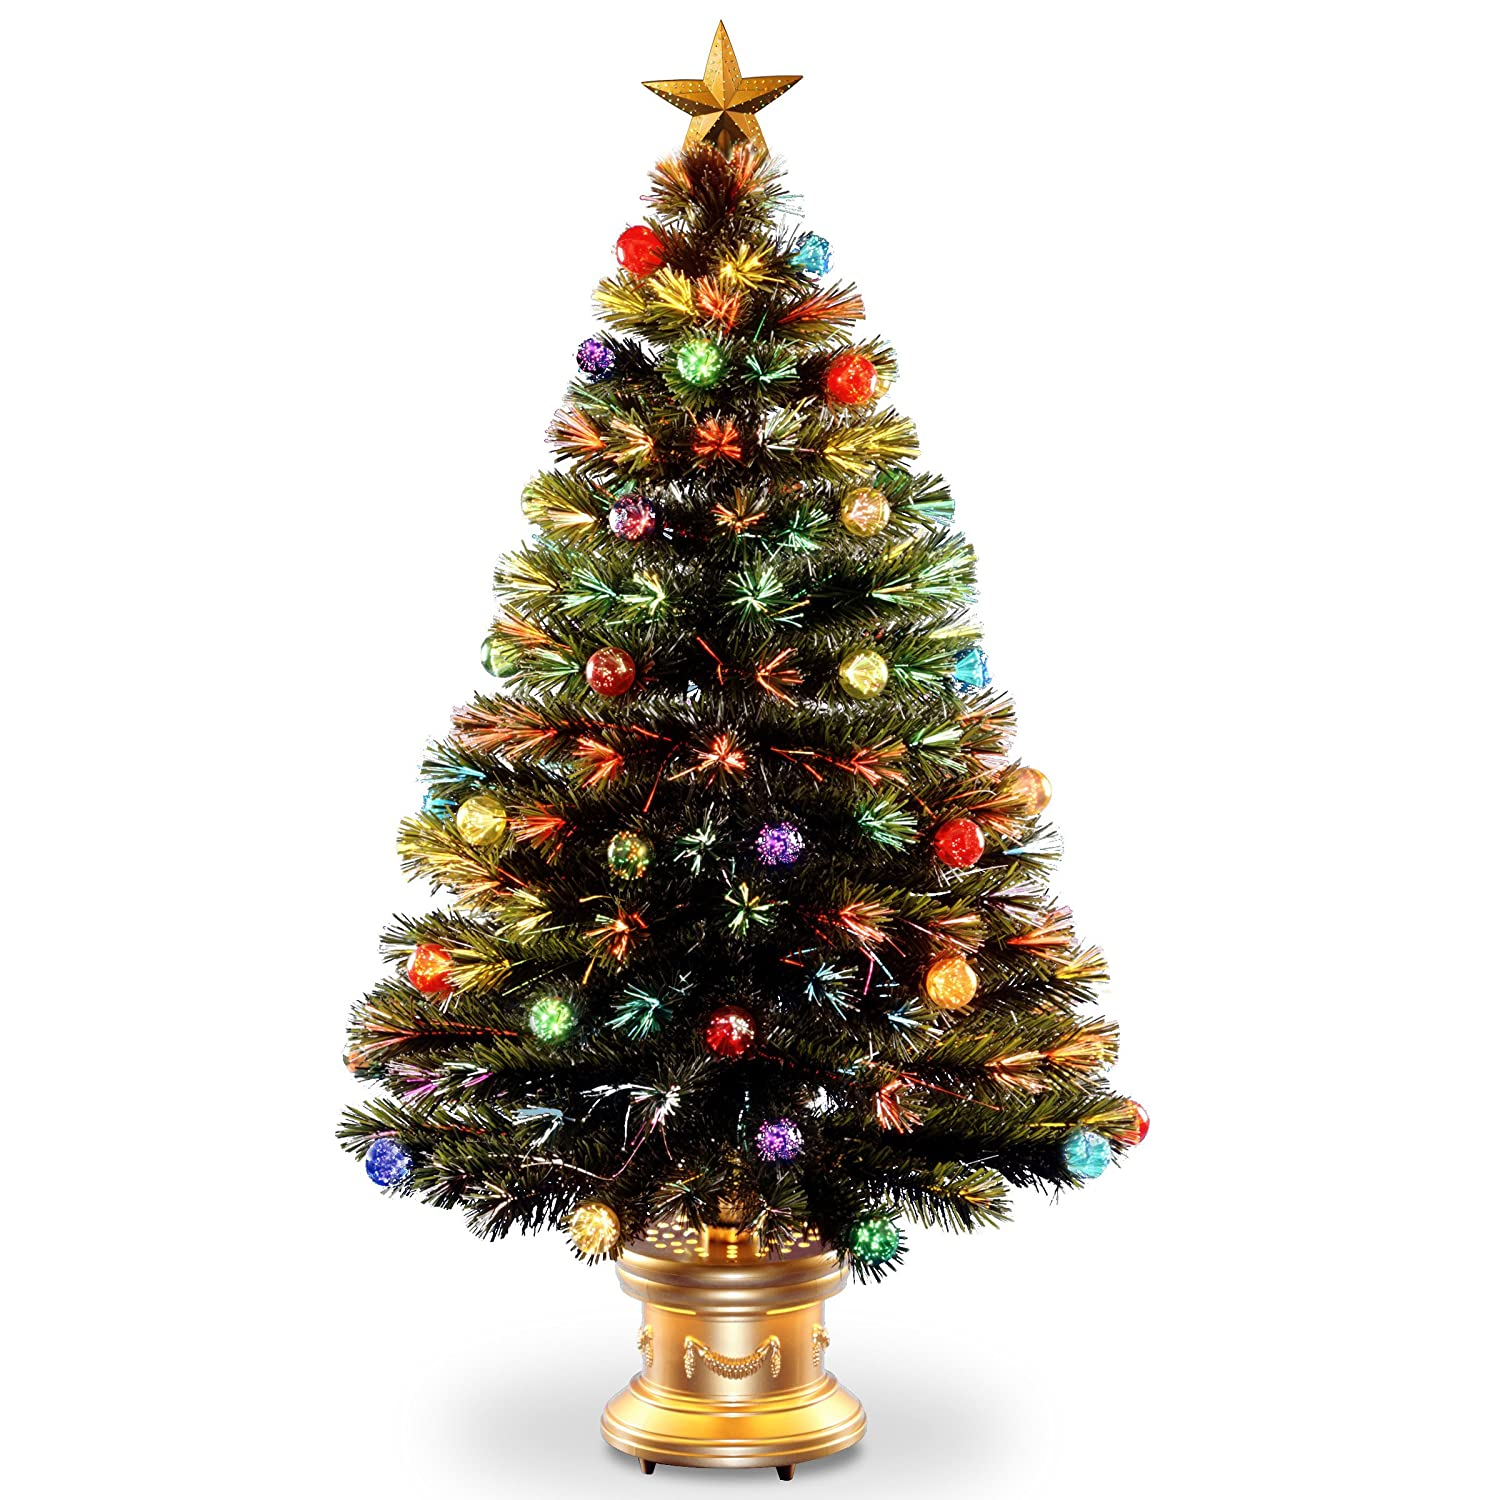 15ac5273b856 Amazon.com: National Tree 48 Inch Fiber Optic Ornament Fireworks Tree with  Gold Top Star and Multicolored Lights in Gold Base (SZOX7-100L-48): Home &  ...